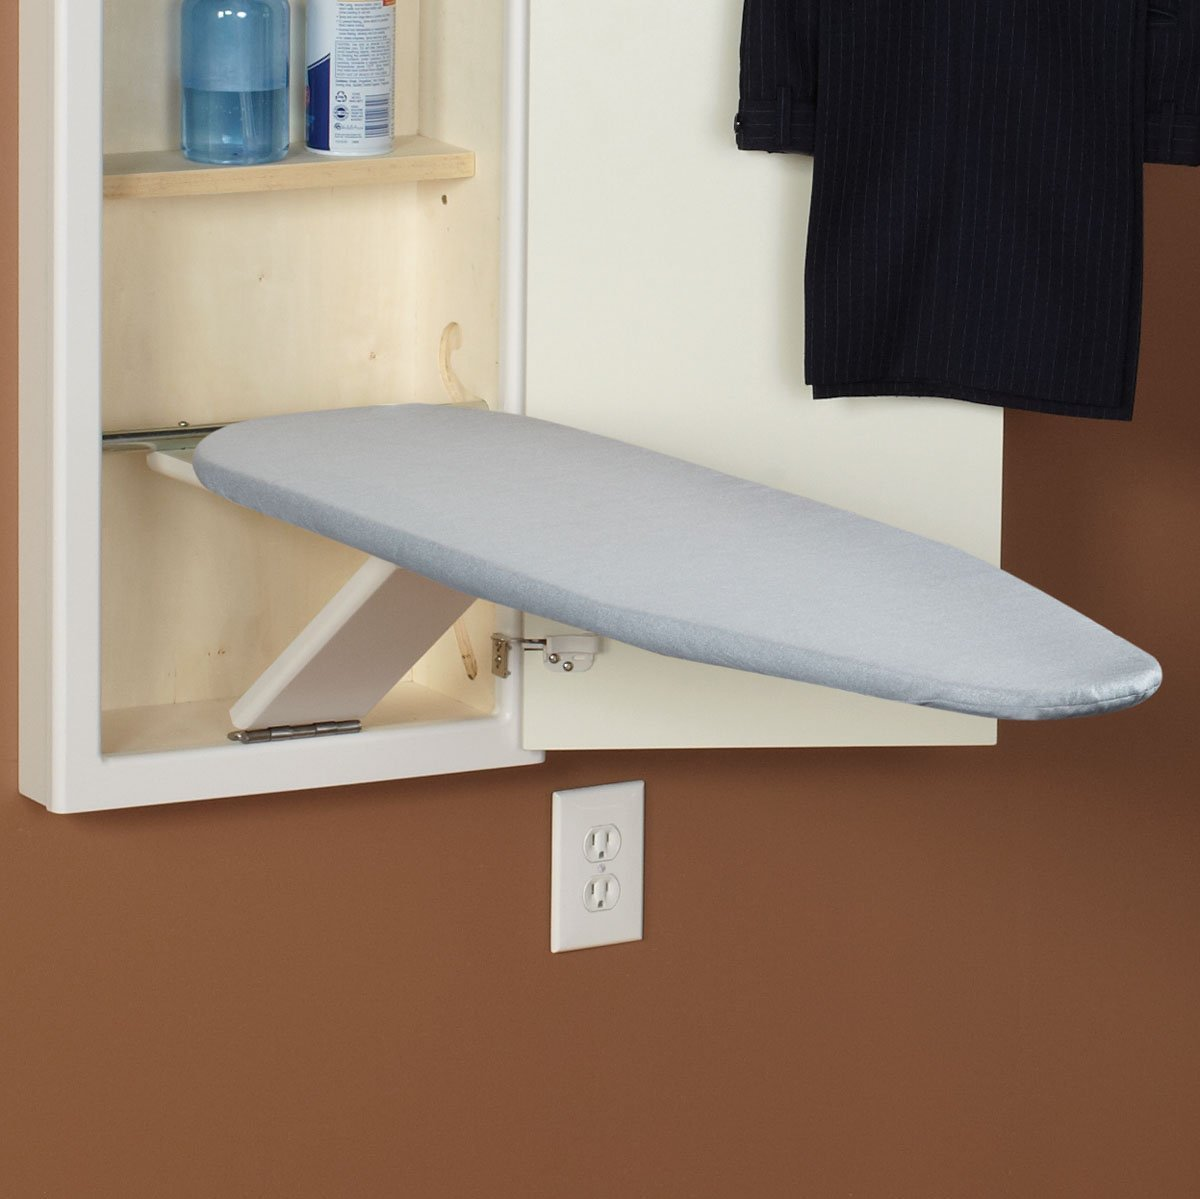 Silver Silicone Household Essentials Stow Away Replacement Pad and Cover for In-Wall Ironing Board, Silver Silicone